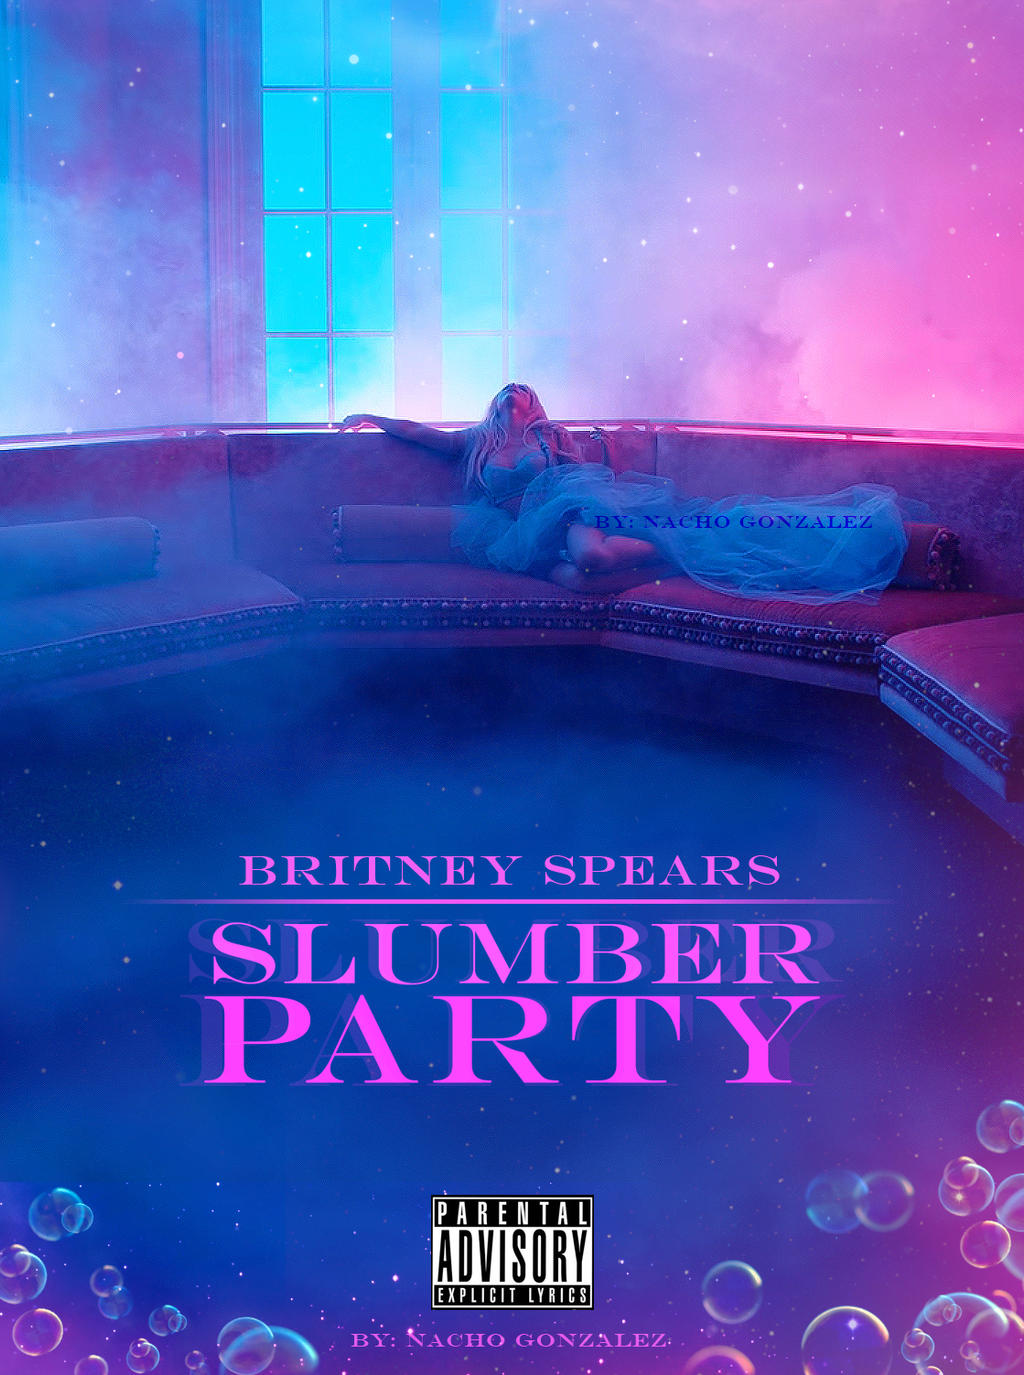 Britney Spears Slumber Party Promo Poster By Magicdreamercreation On Deviantart